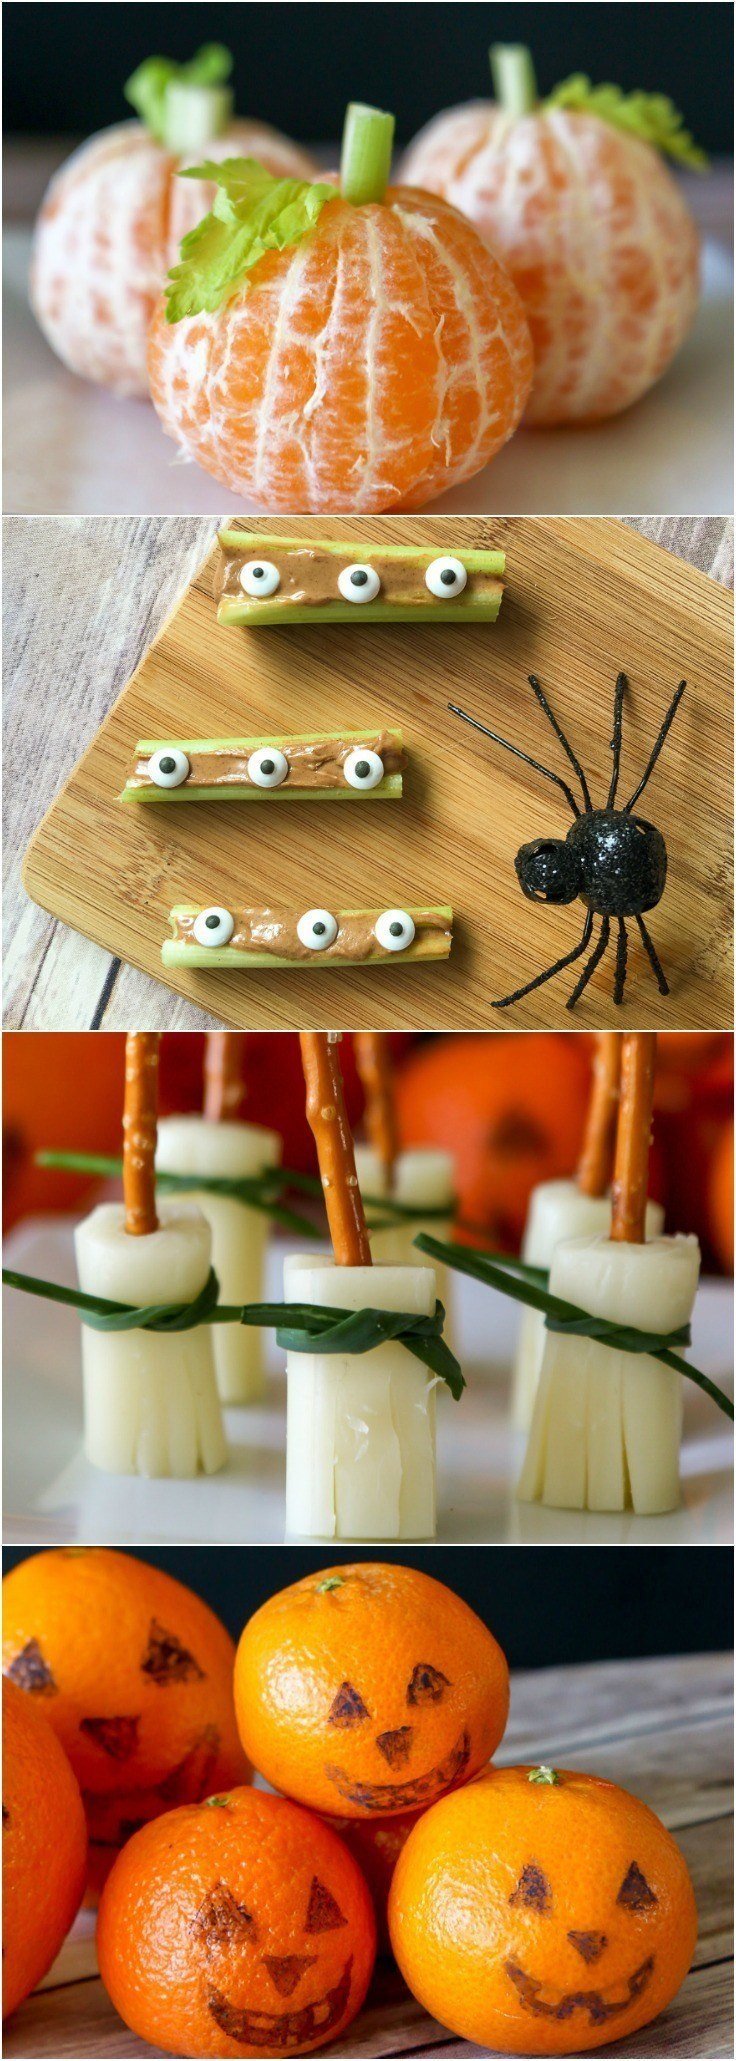 Recipes for easy and healthy Halloween snacks for kids to take to school, parties, and play dates.